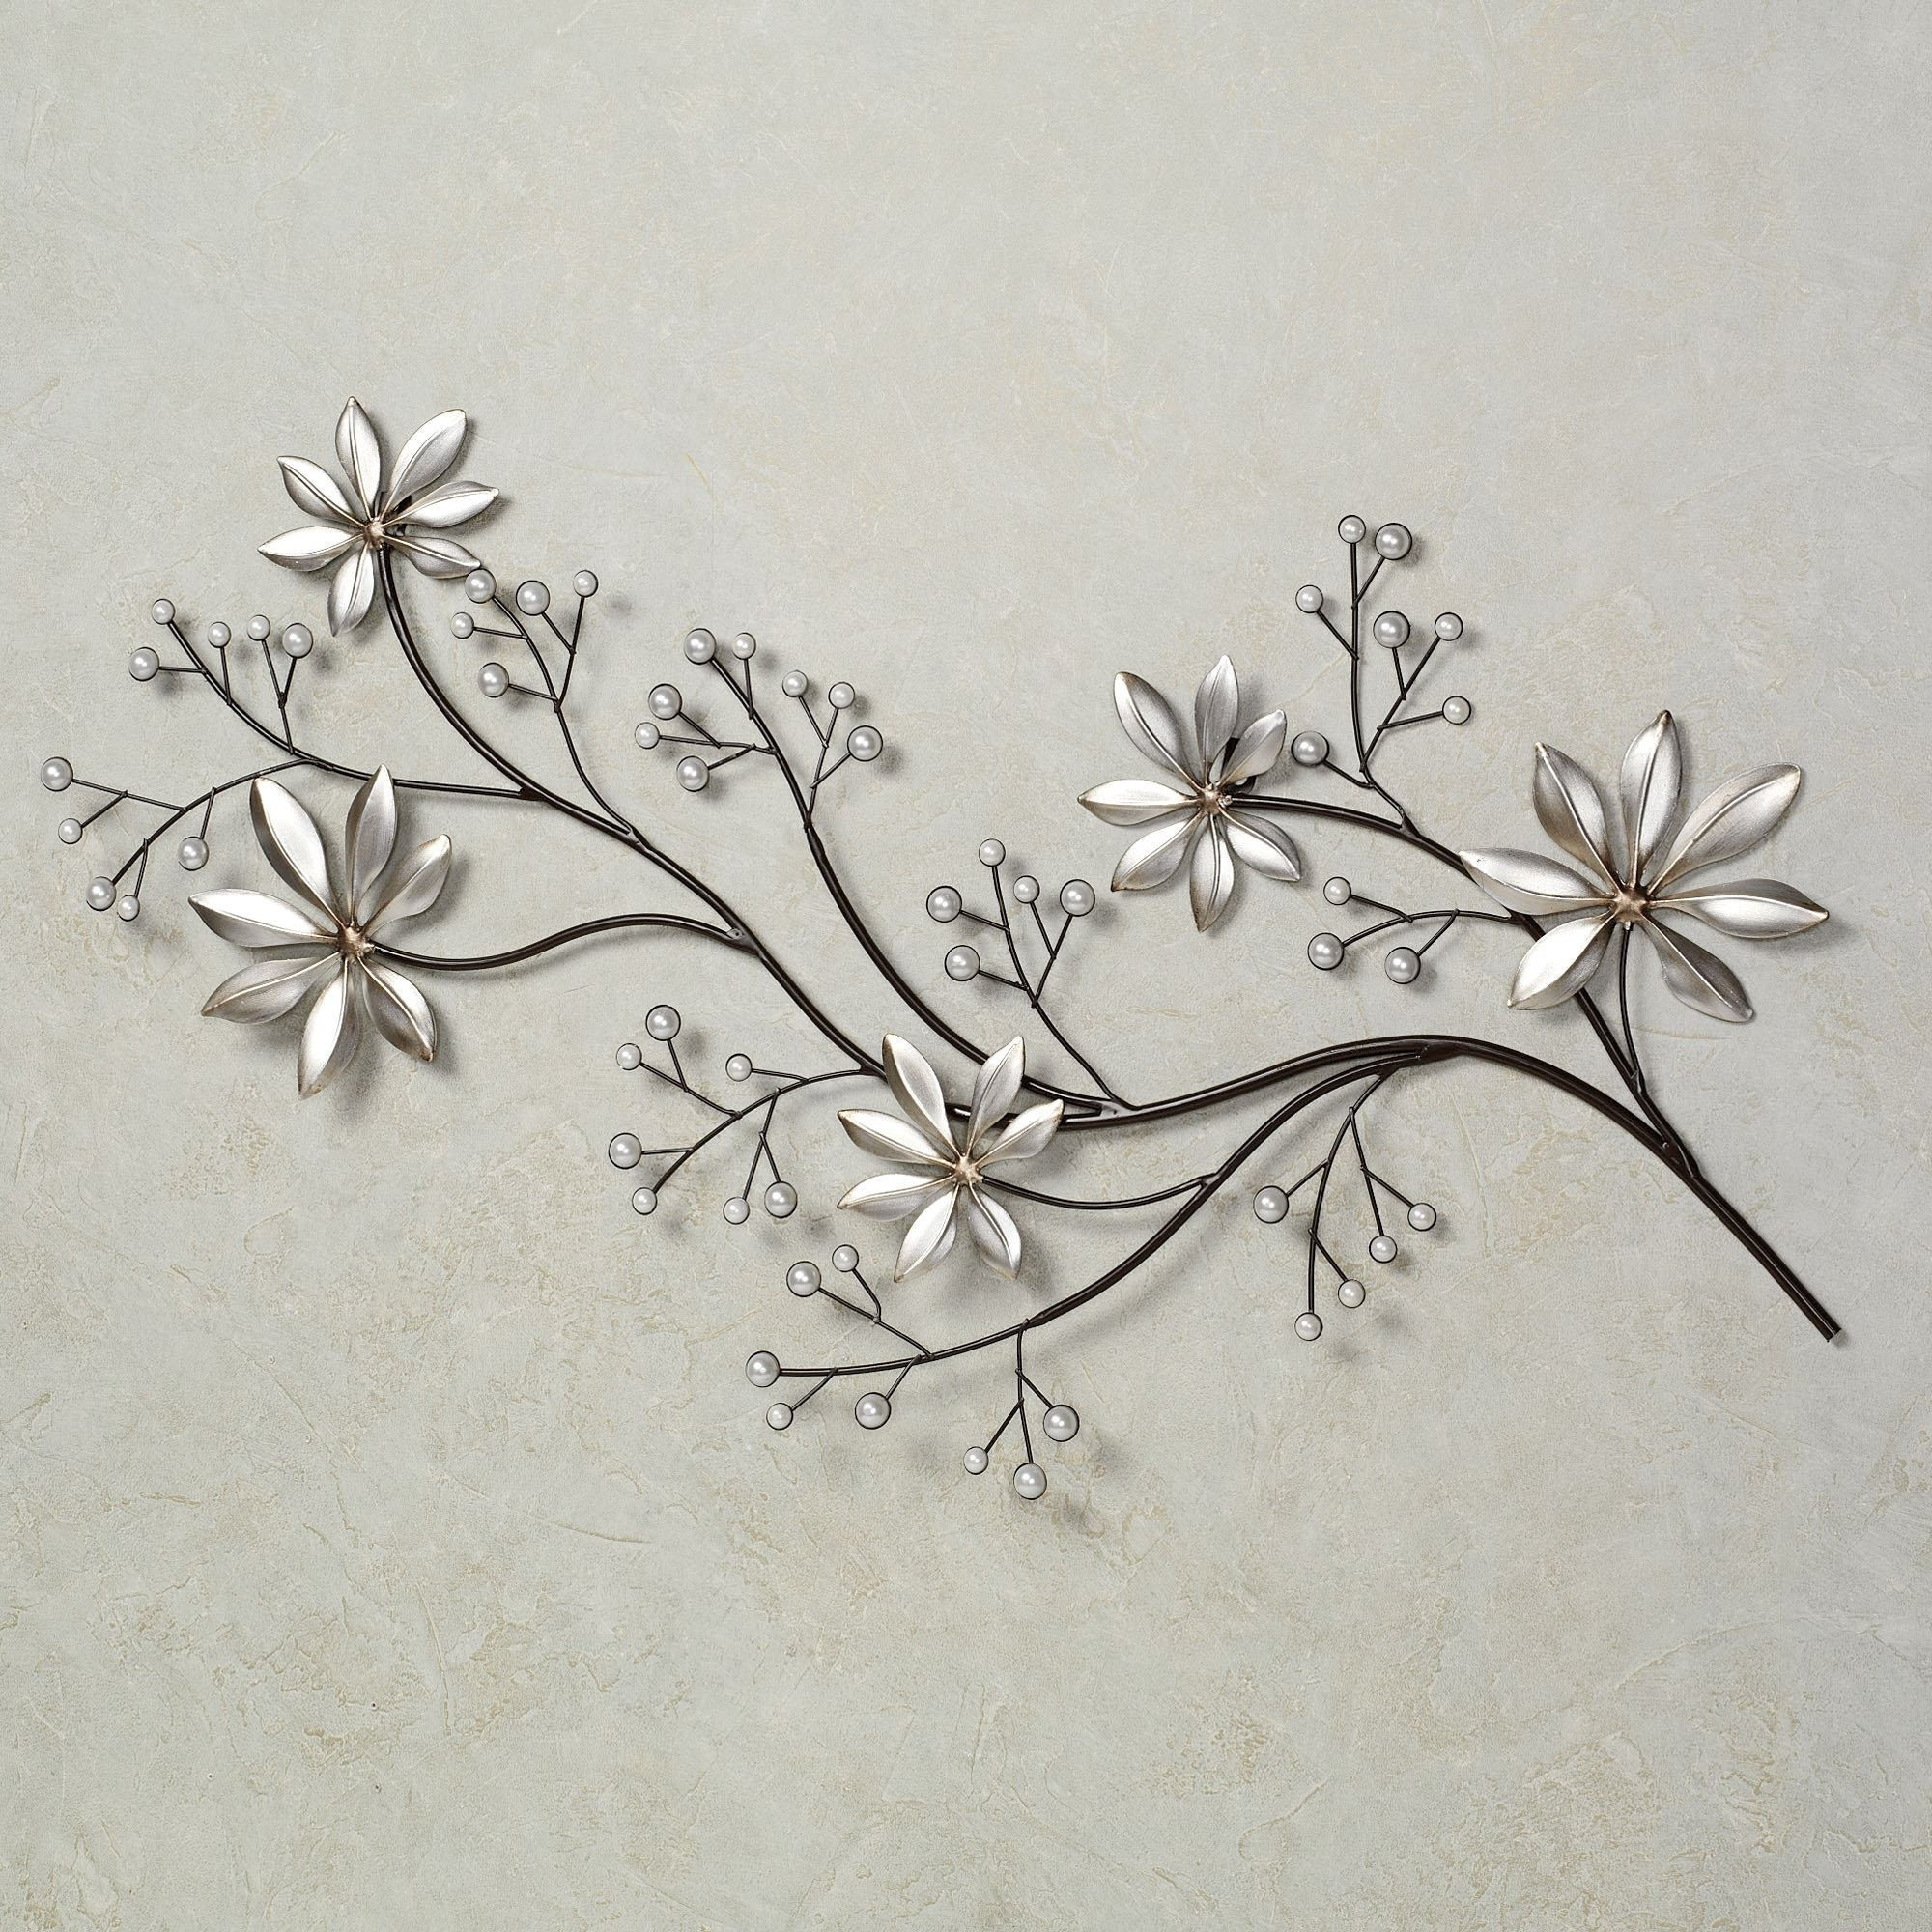 31 Beautiful Floral Wall Art Design Of Metal Flowers Wall Decor With Regard To Fashionable Metal Flowers Wall Art (View 1 of 15)